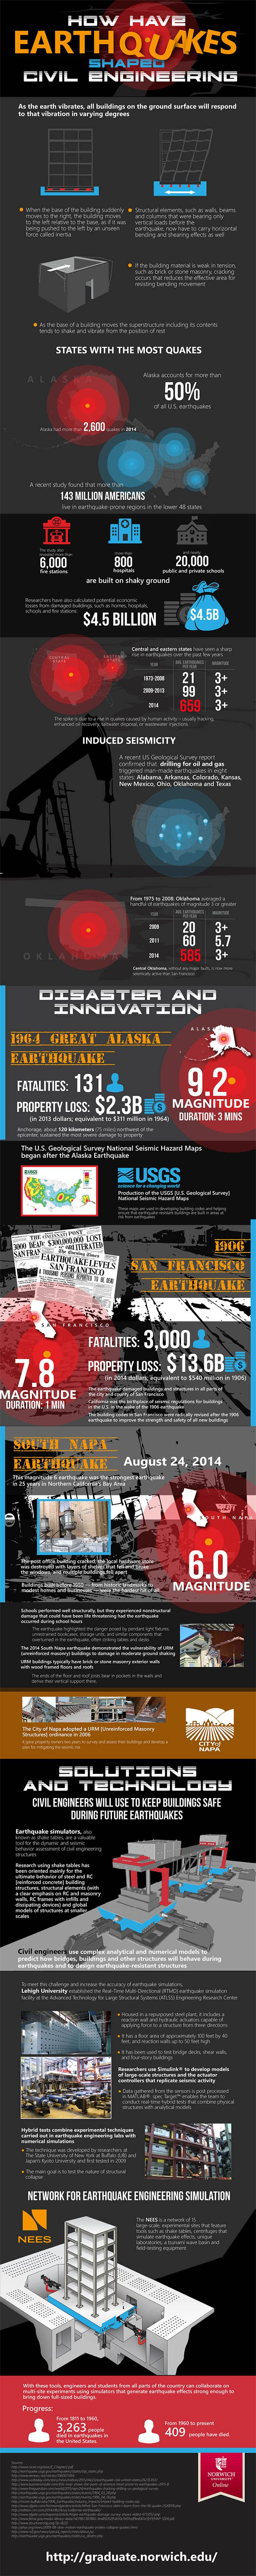 infographic: how engineering is keeping us safe from earthquakes